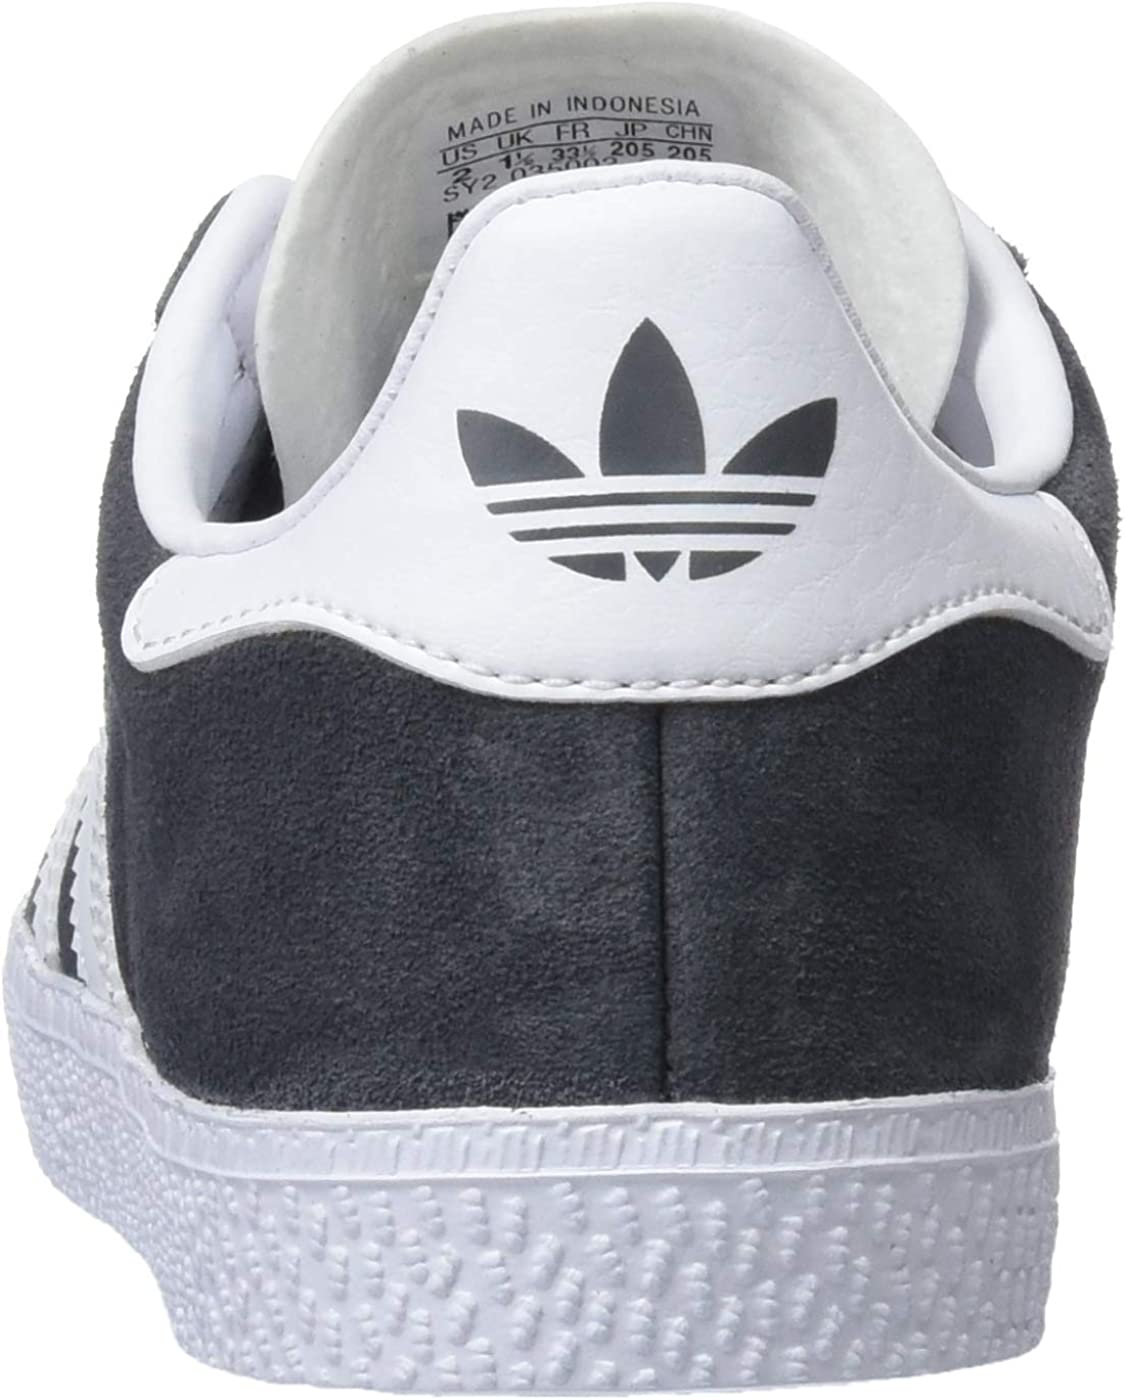 adidas gazelle baskets basses mixte adulte